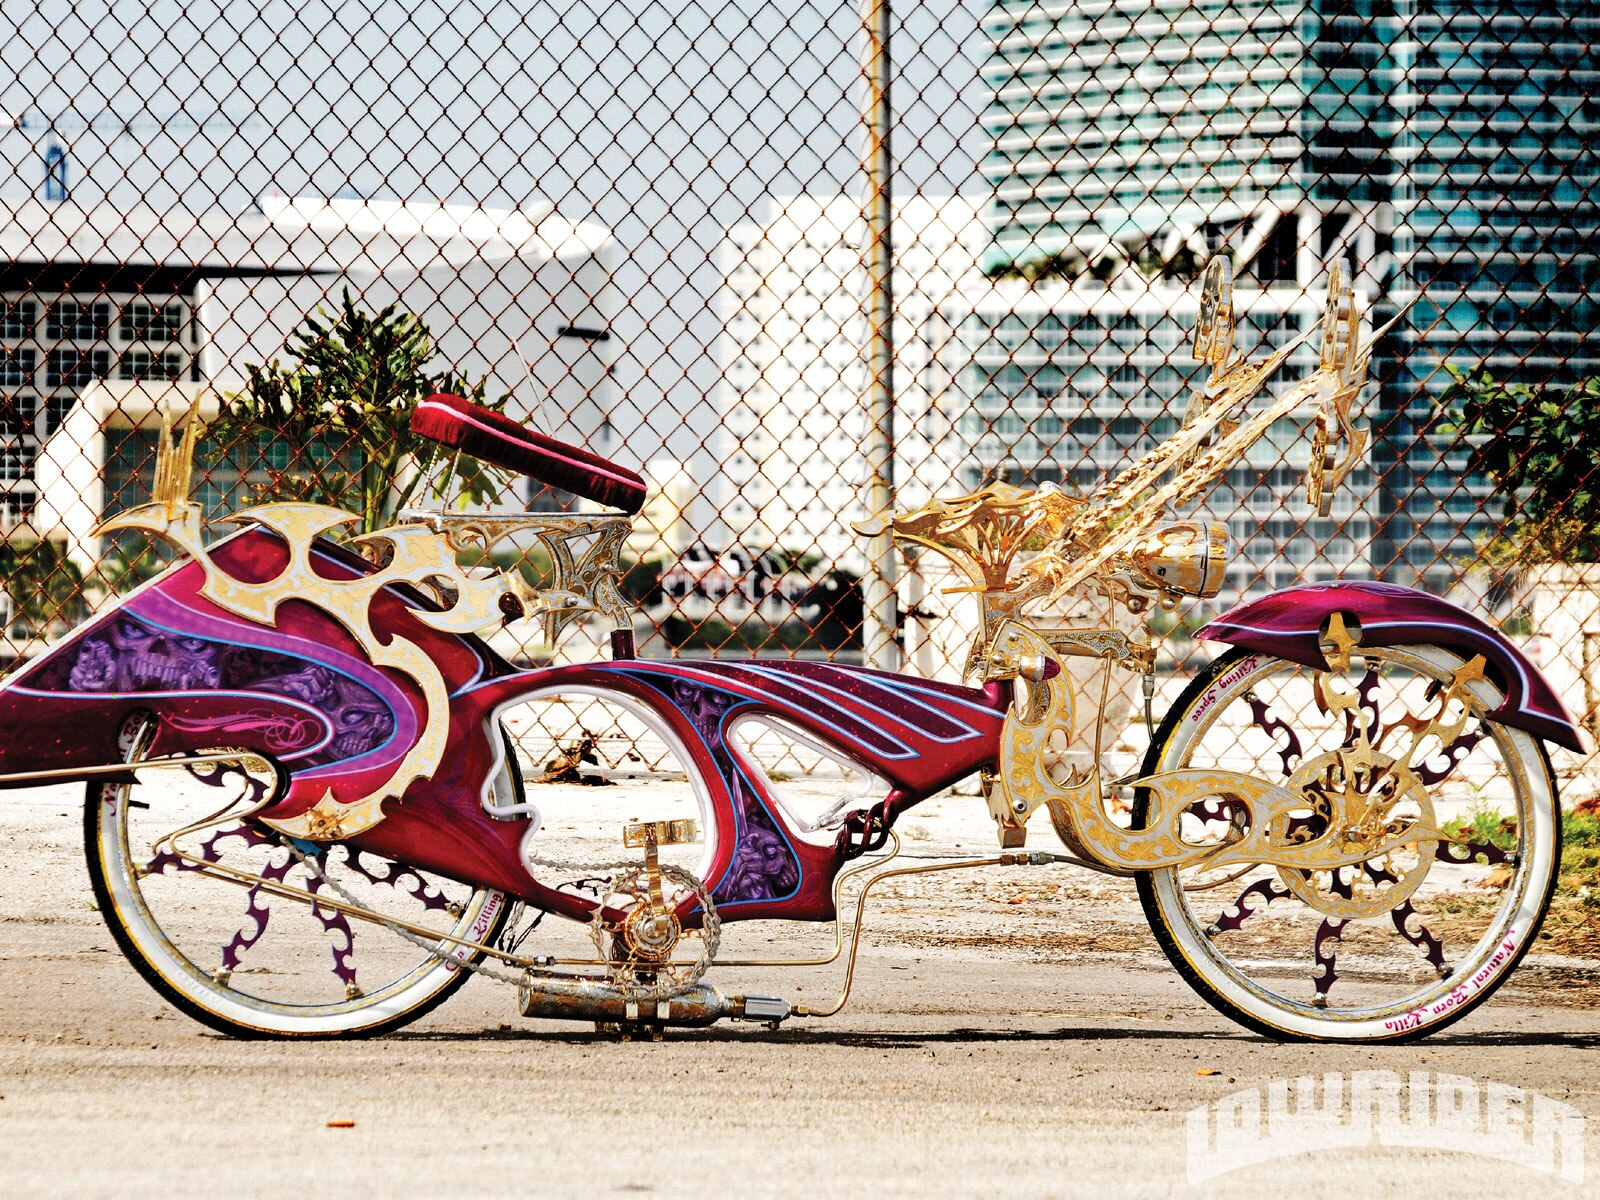 1004_lrmp_01_o-natural_born_killa_custom_lowrider_bike-right2